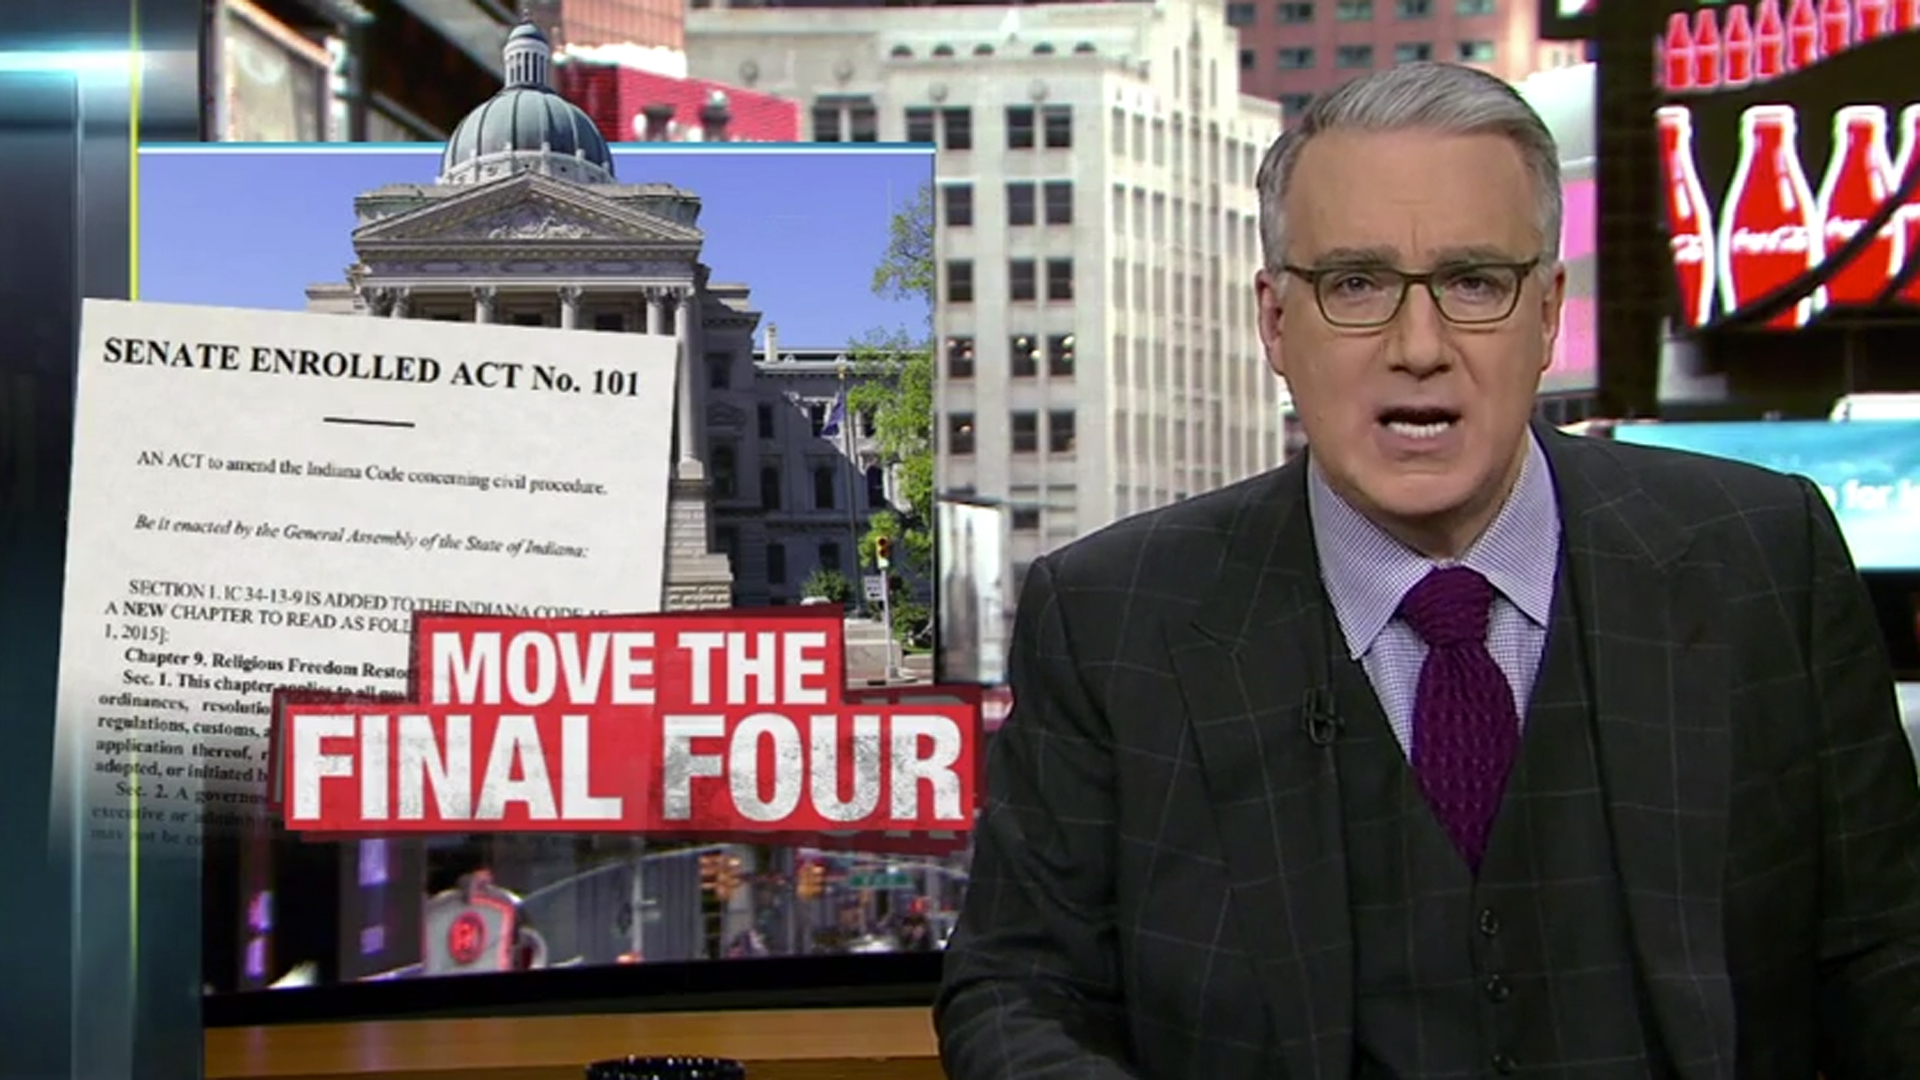 Keith Olbermann calls for NCAA to move 2015 Final Four from Indianapolis